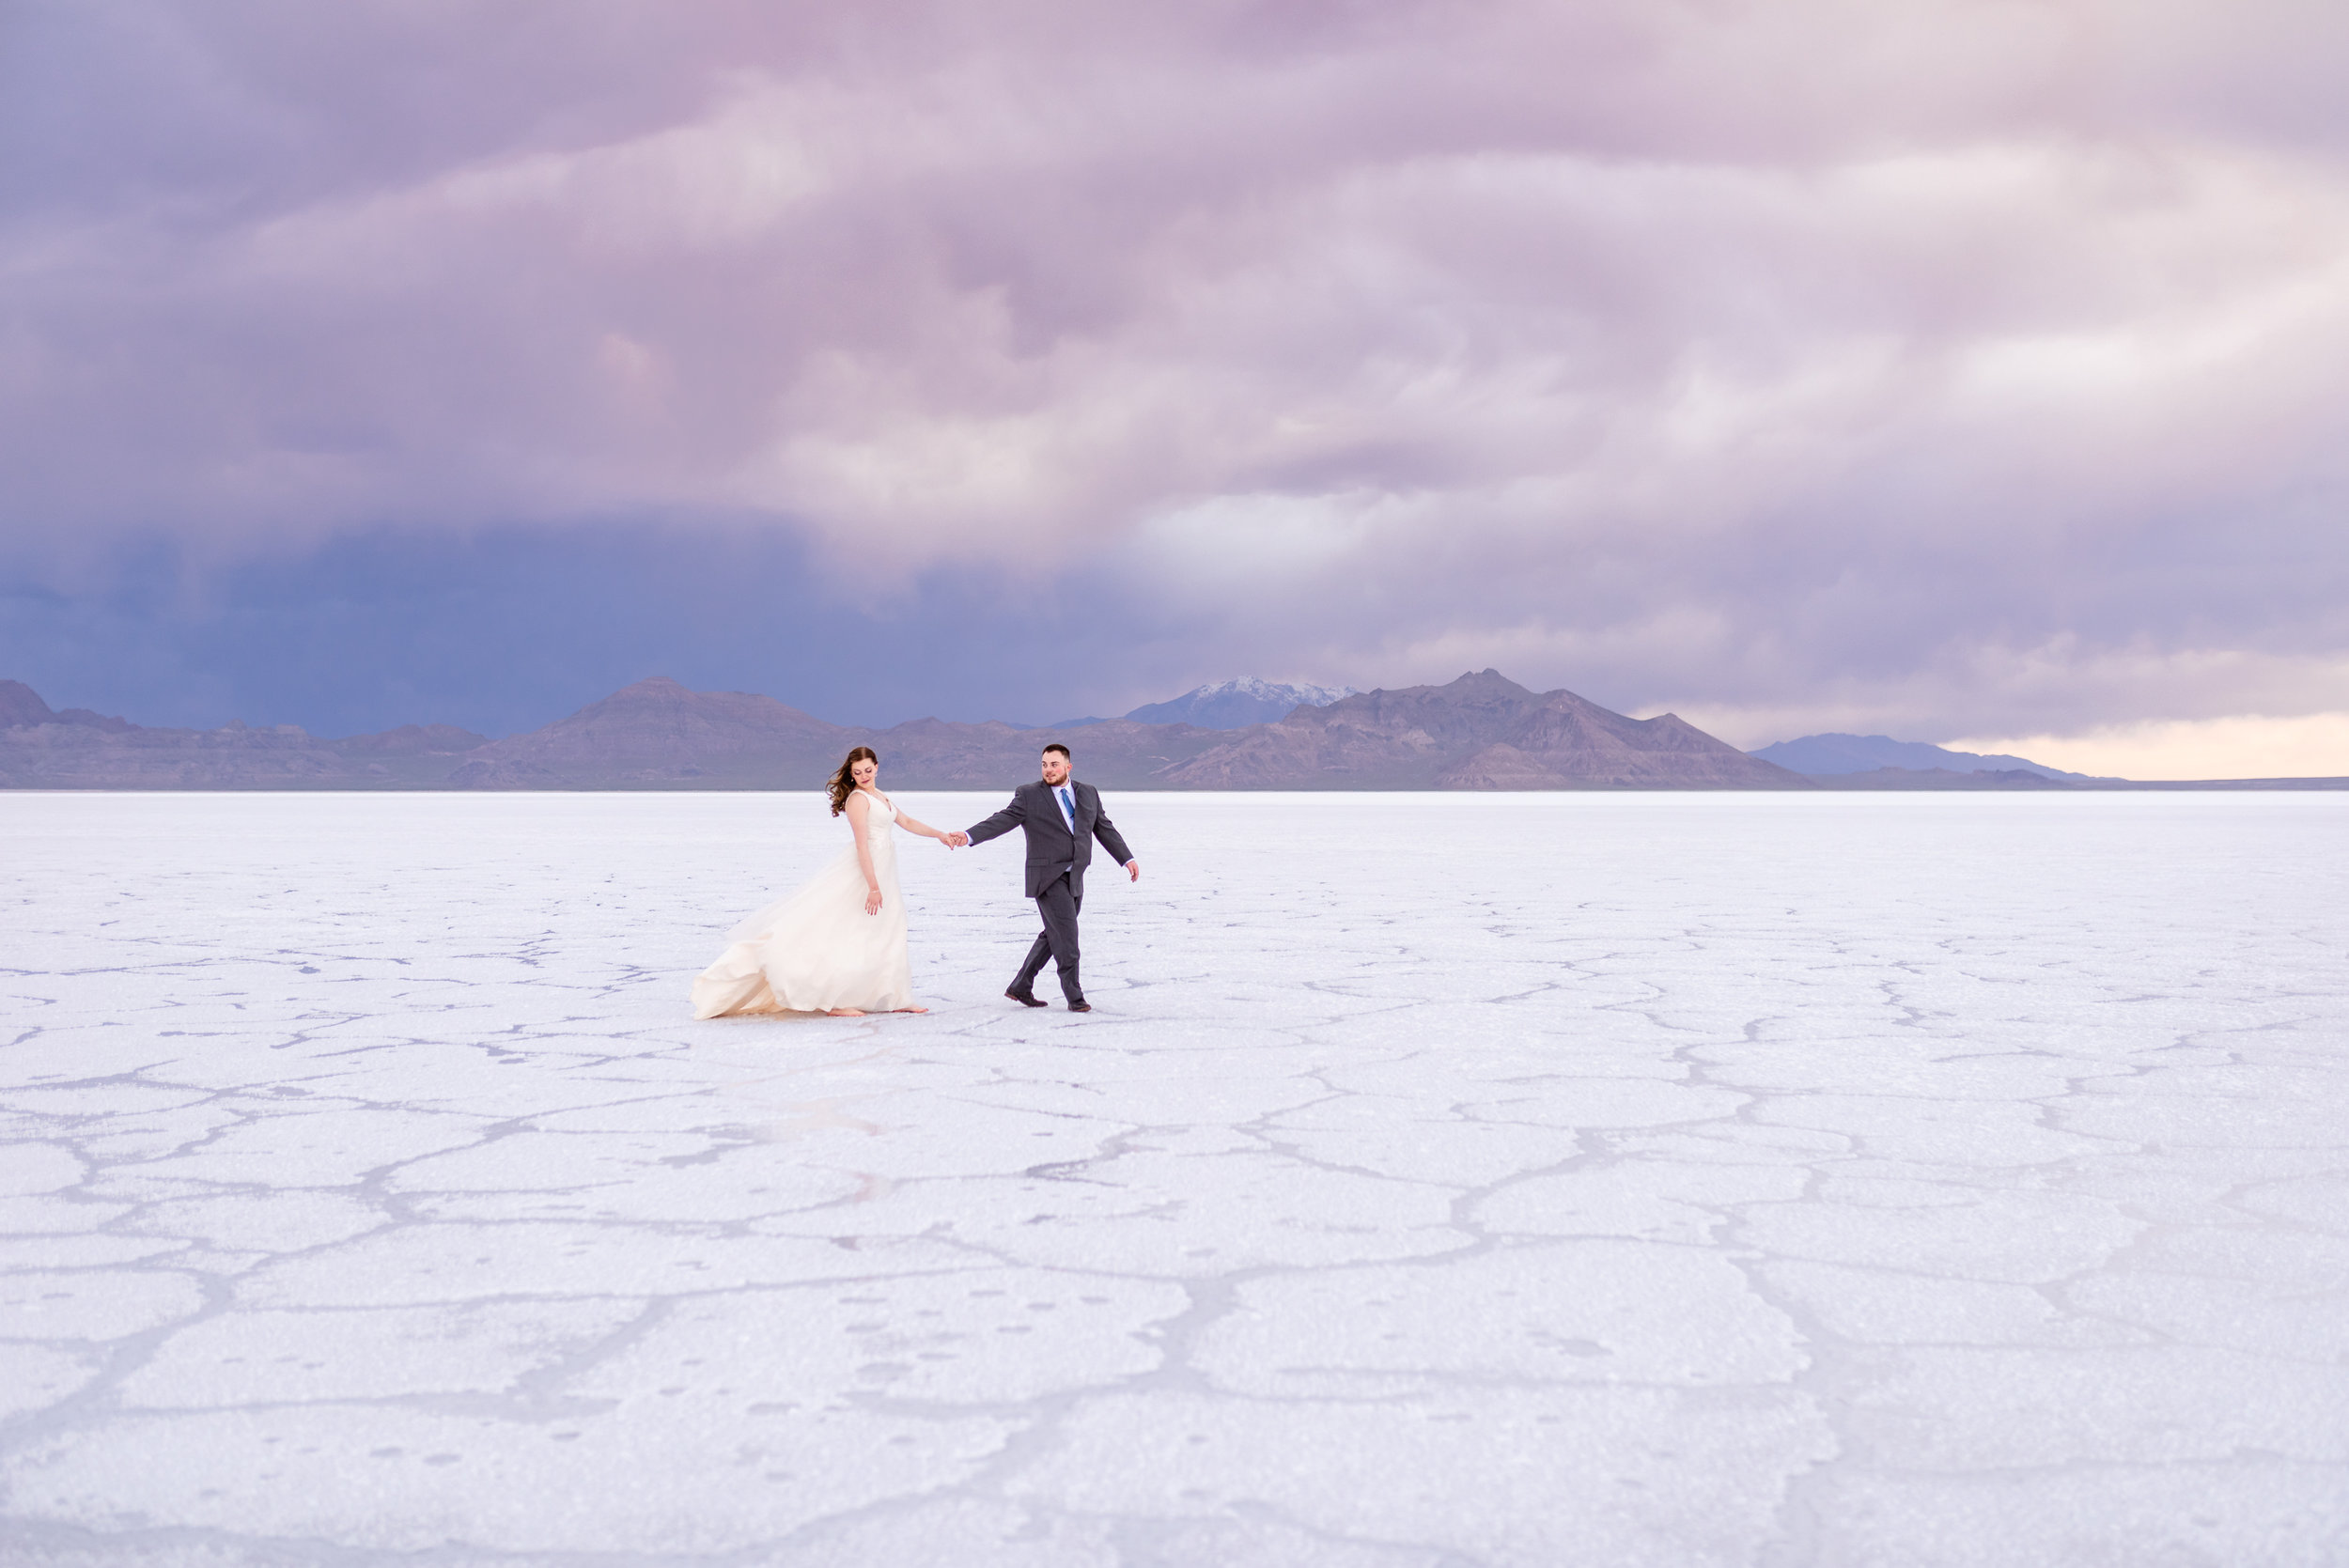 Loving Each other through the storms. Walking bride and groom pictures. Formals and first look wedding session taken at the Bonneville Salt Flats in Utah during a stormy evening in May. Gold and ivory wedding dress with groom's blue suit and purple tie. Images taken by Coley Cook Photography.